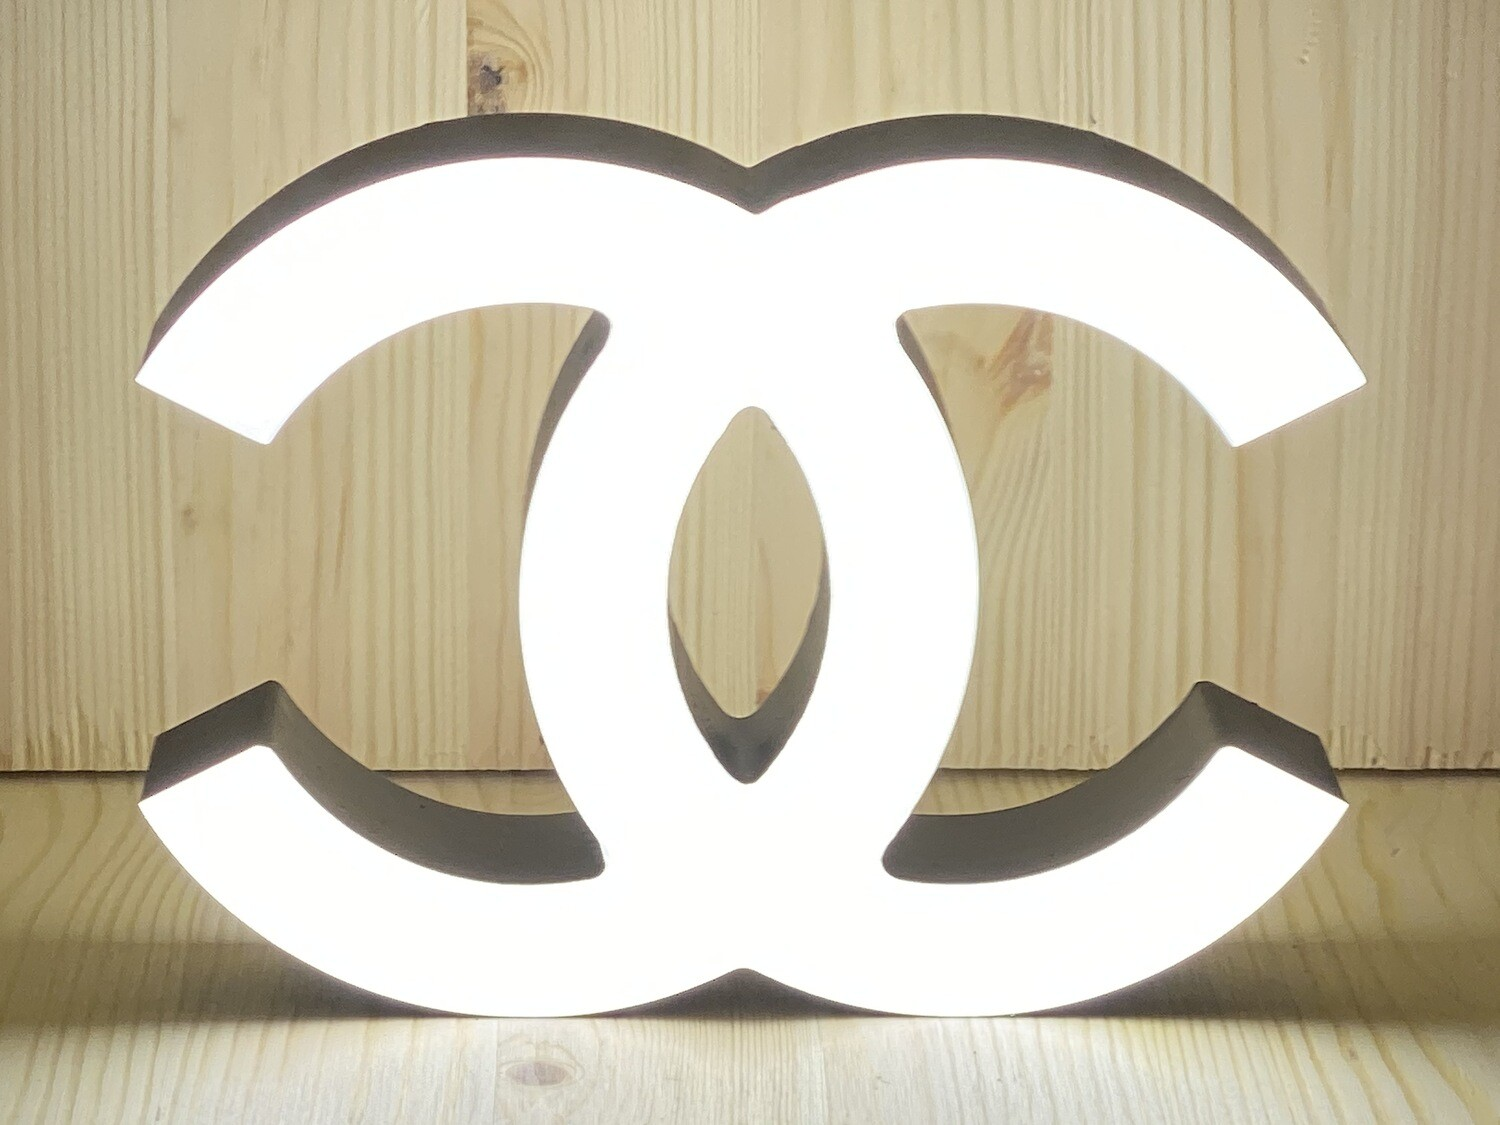 12v or 24v Illuminated Coco Chanel Sign